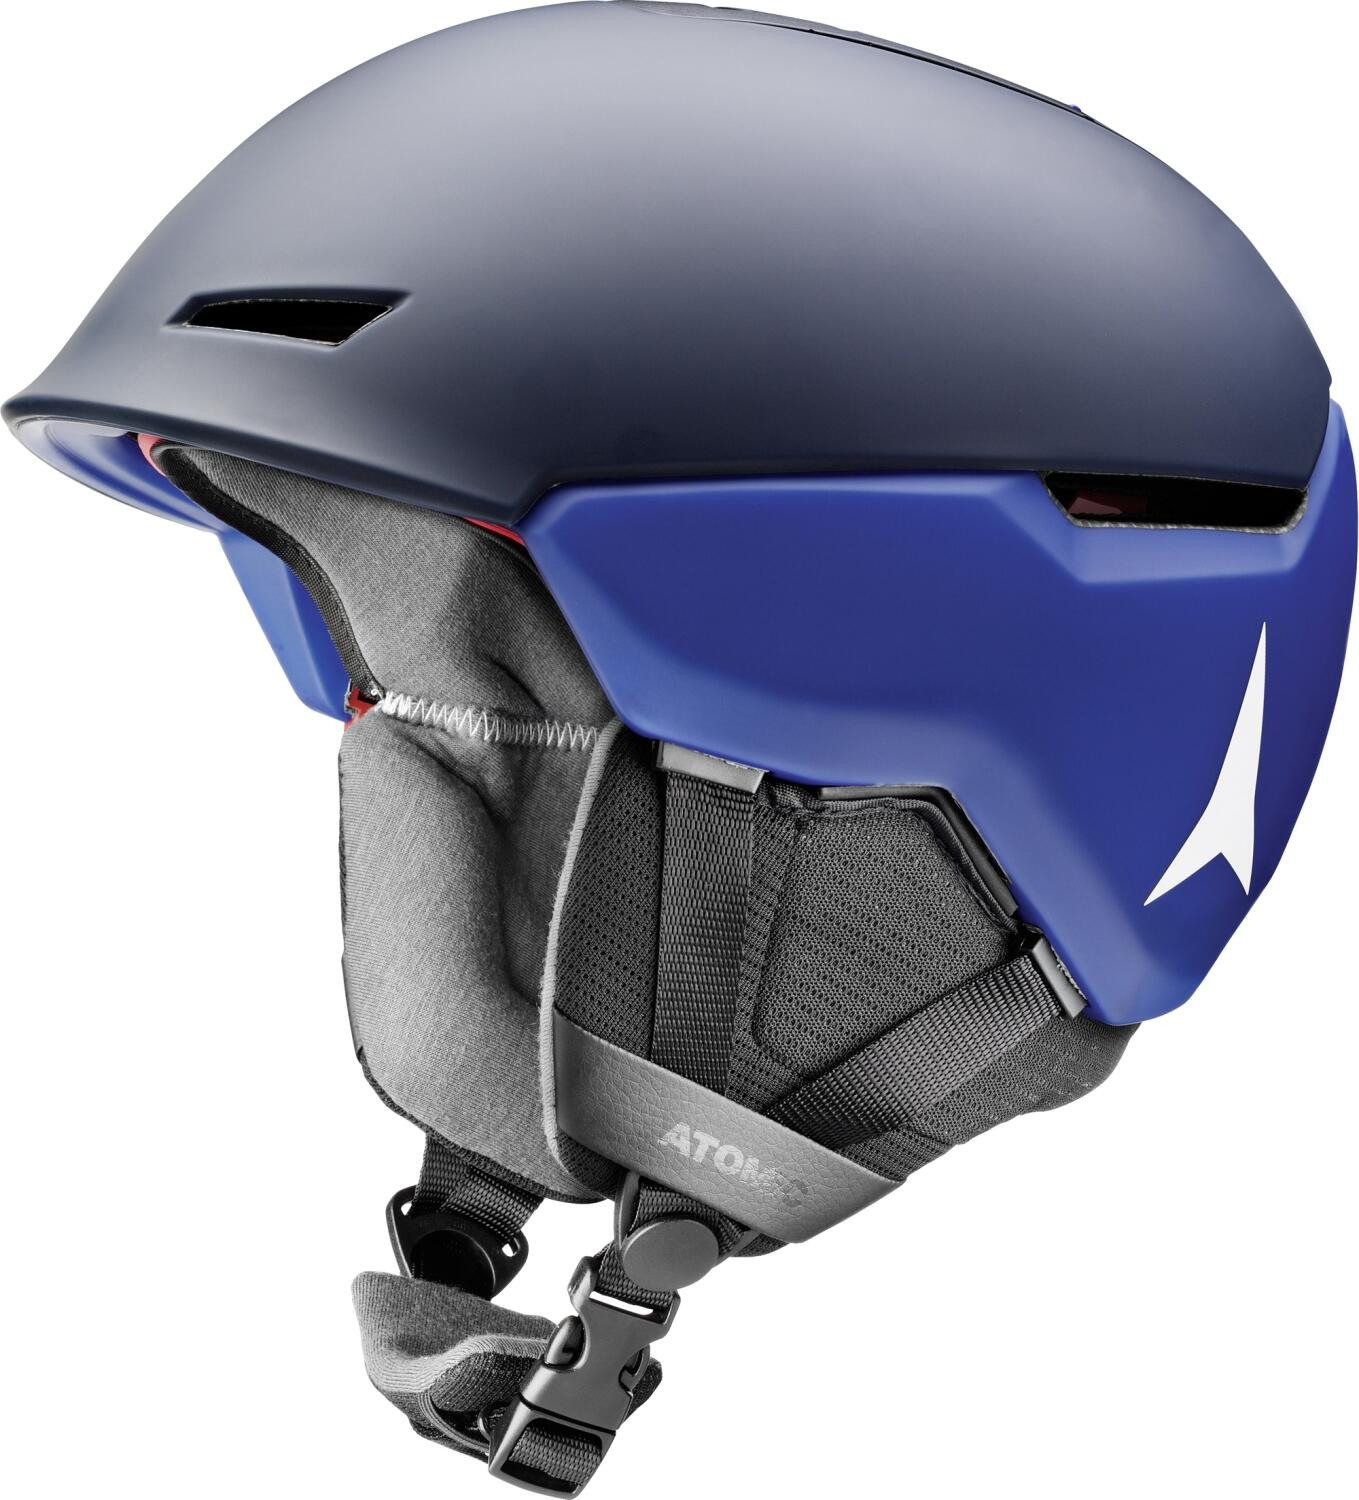 atomic-revent-lf-allmountain-skihelm-gr-ouml-szlig-e-51-55-cm-dark-blue-